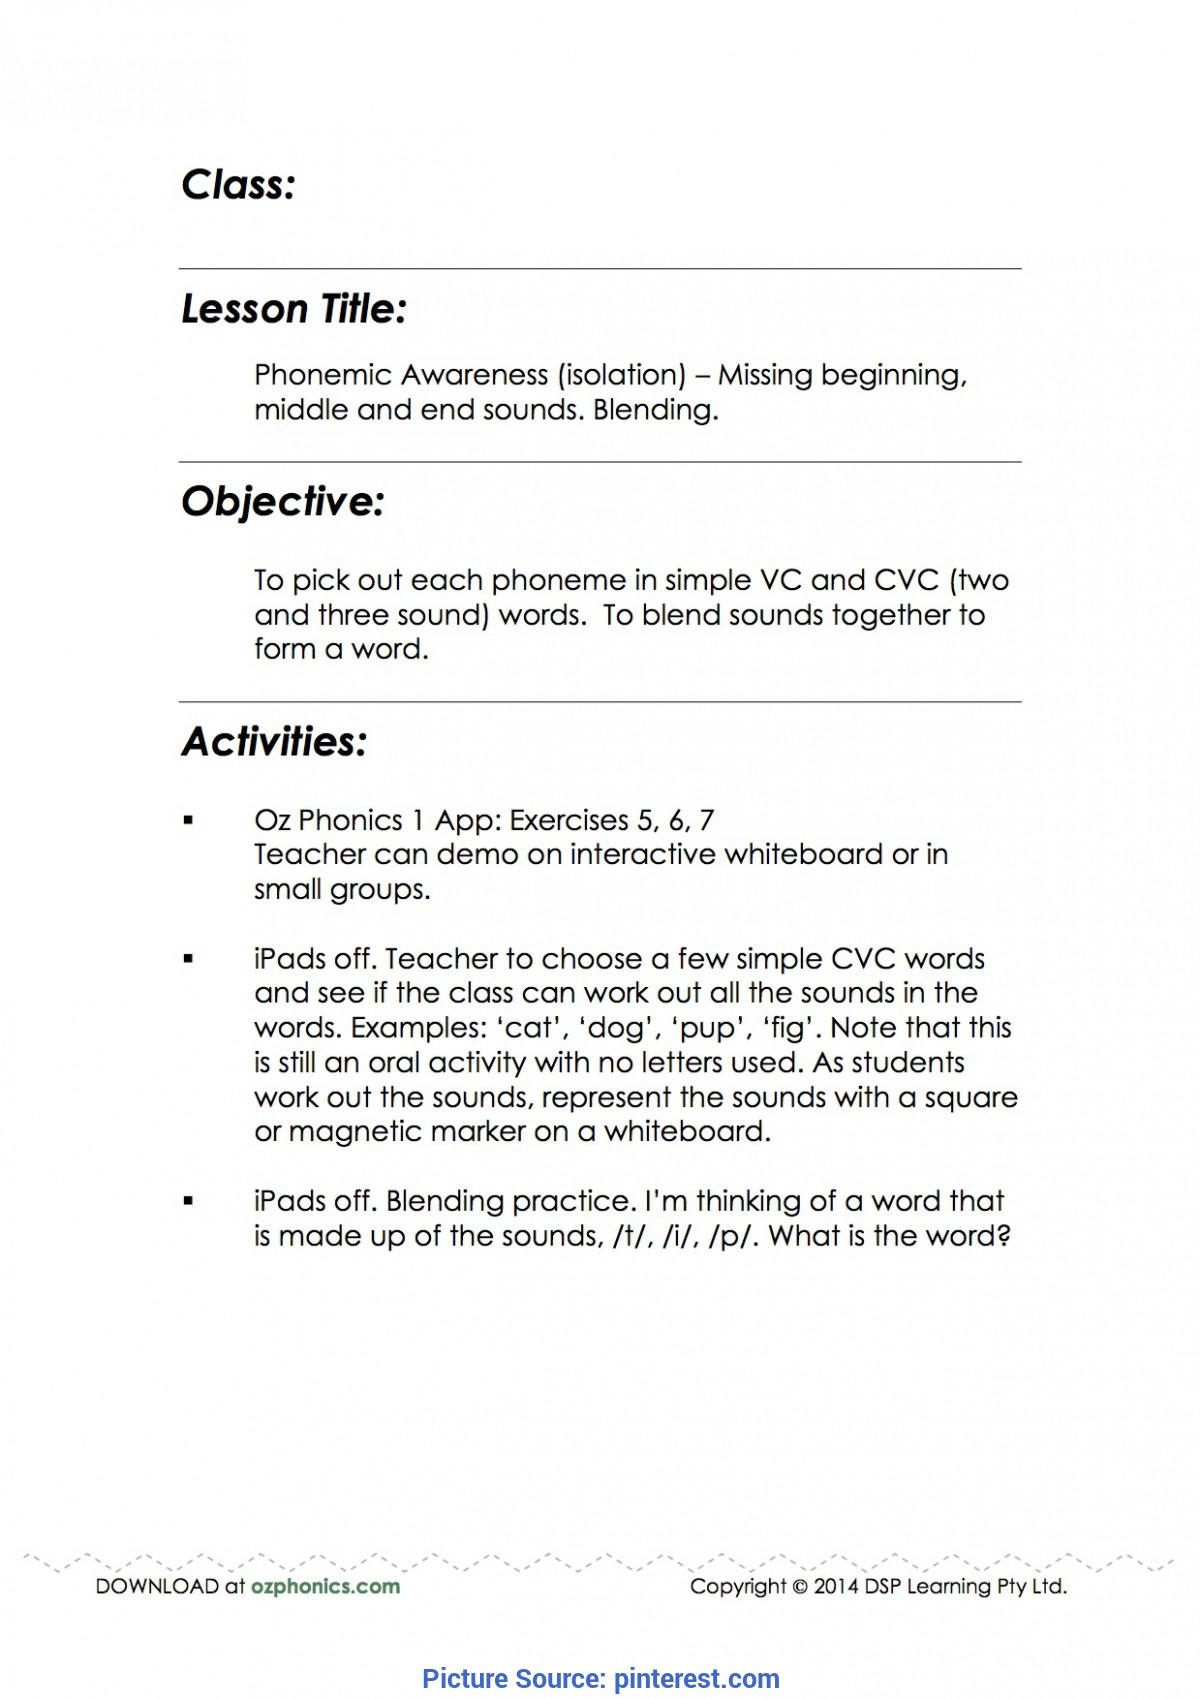 Typical Technology Integrated Lesson Plans For